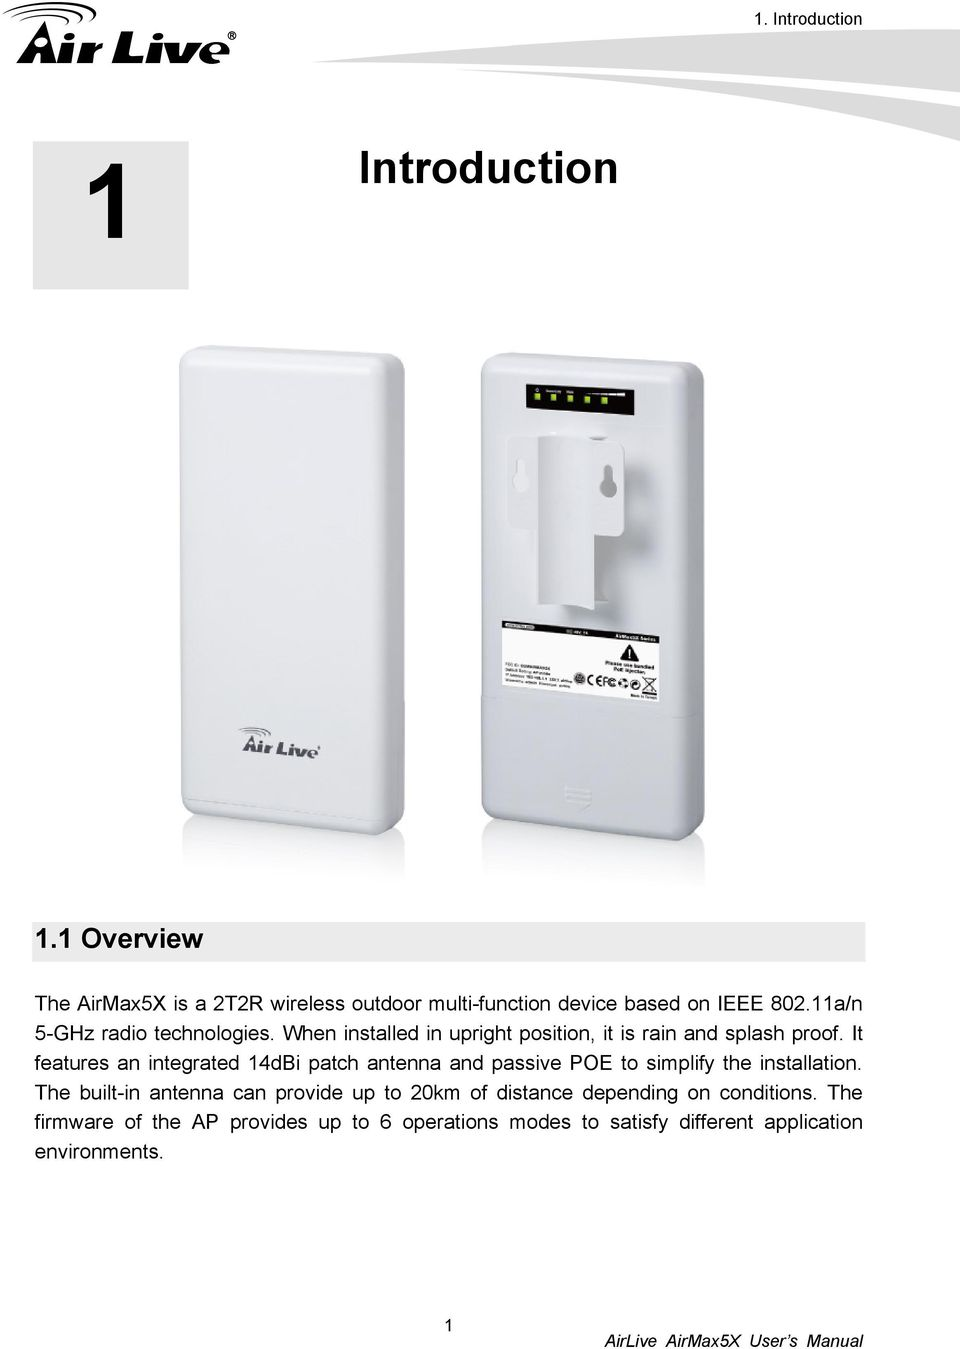 It features an integrated 14dBi patch antenna and passive POE to simplify the installation.